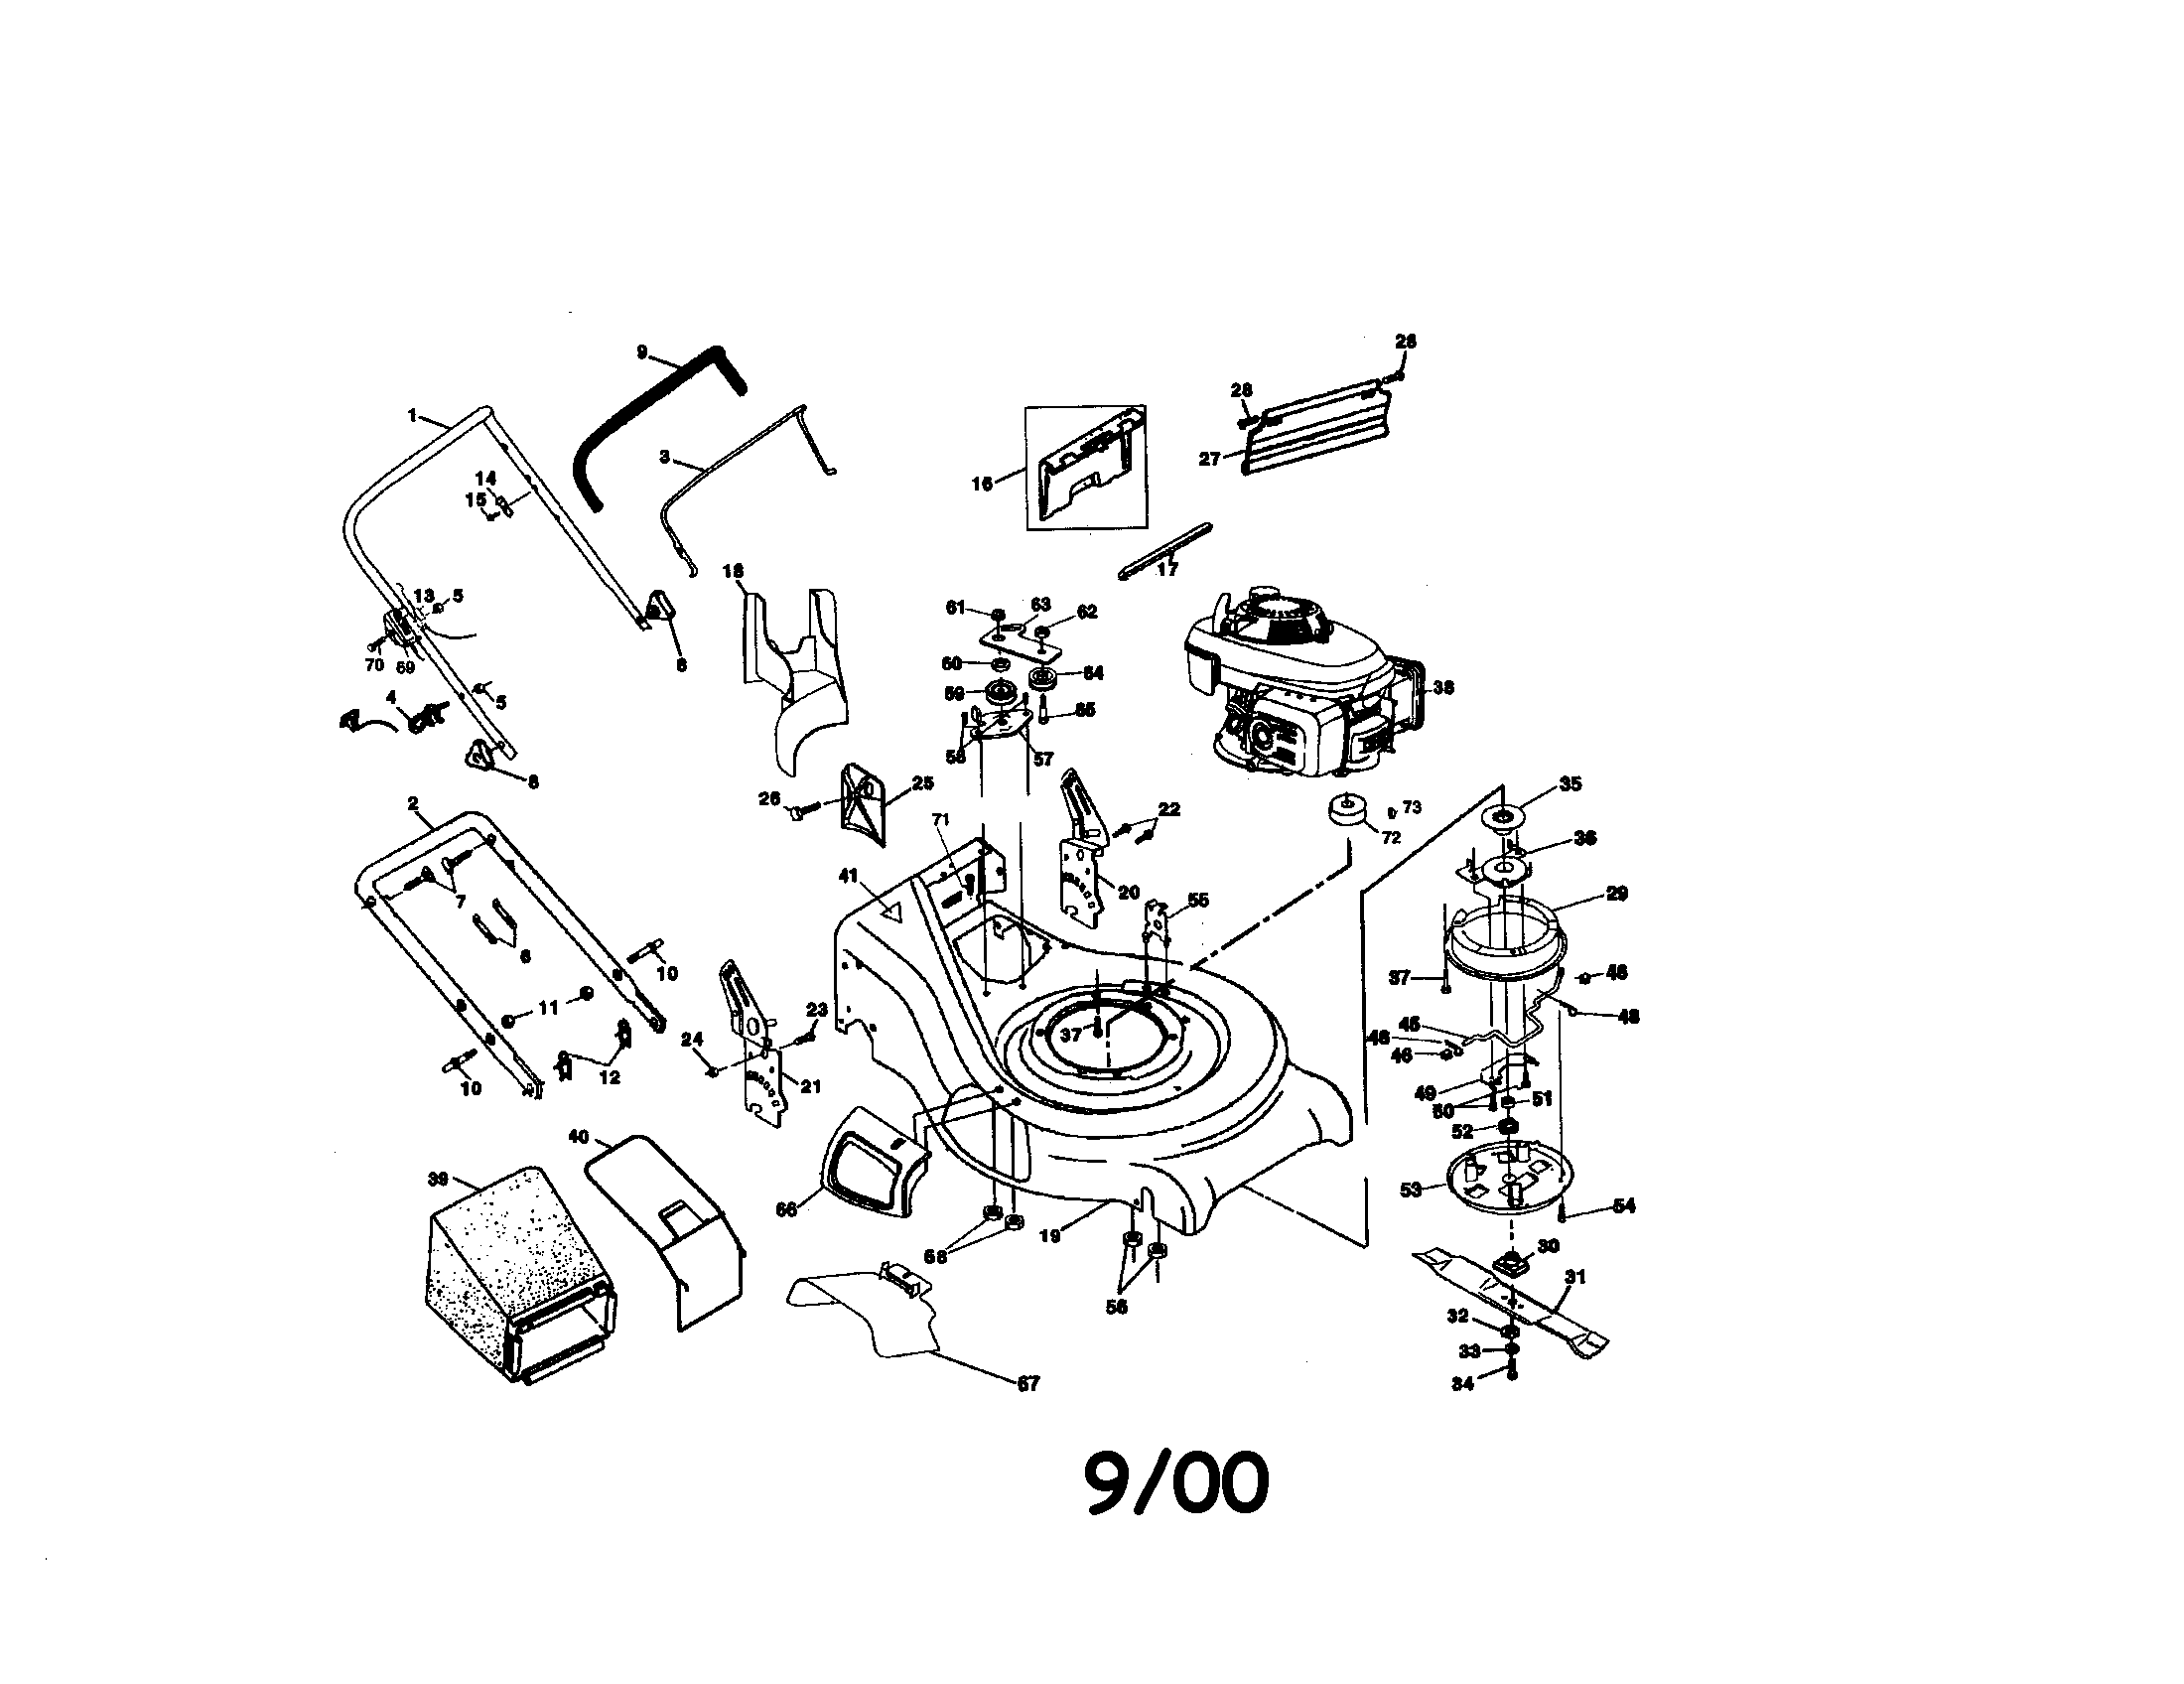 Wiring Database 2020: 27 Poulan Riding Mower Parts Diagram